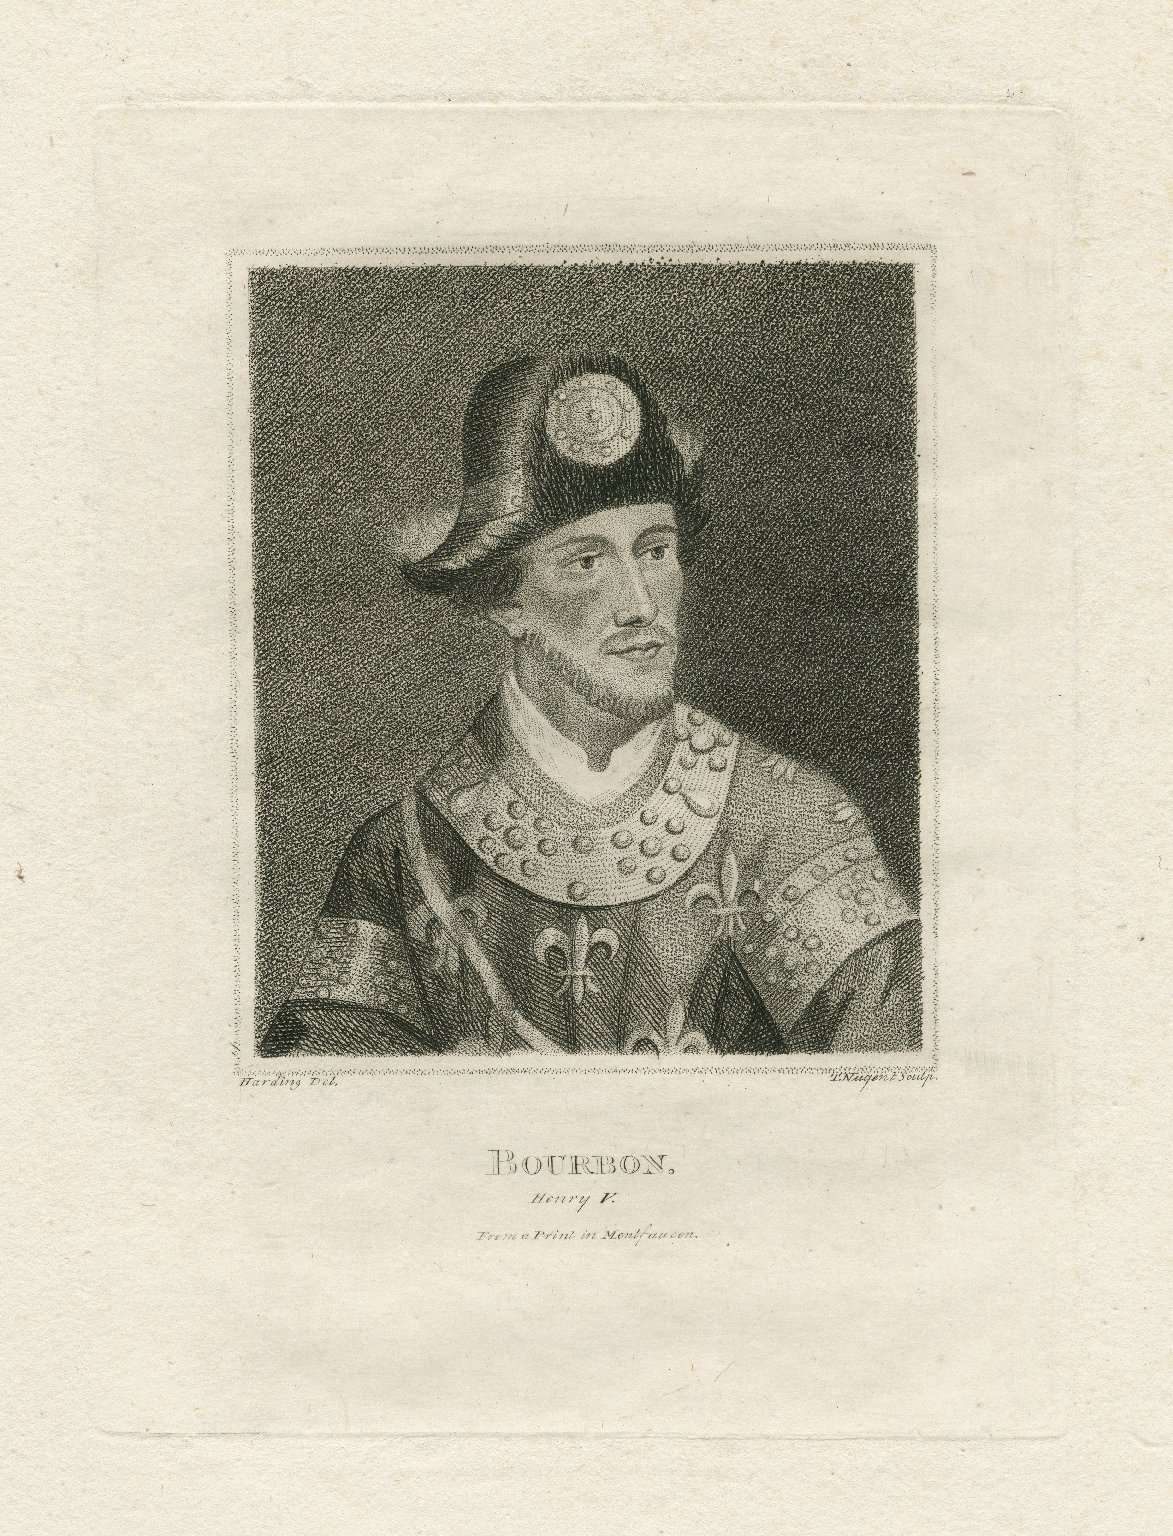 Bourbon [in Shakespeare's] Henry V, from a print in Montfaucon [graphic] / Harding, del. ; T. Nugent, sculp.